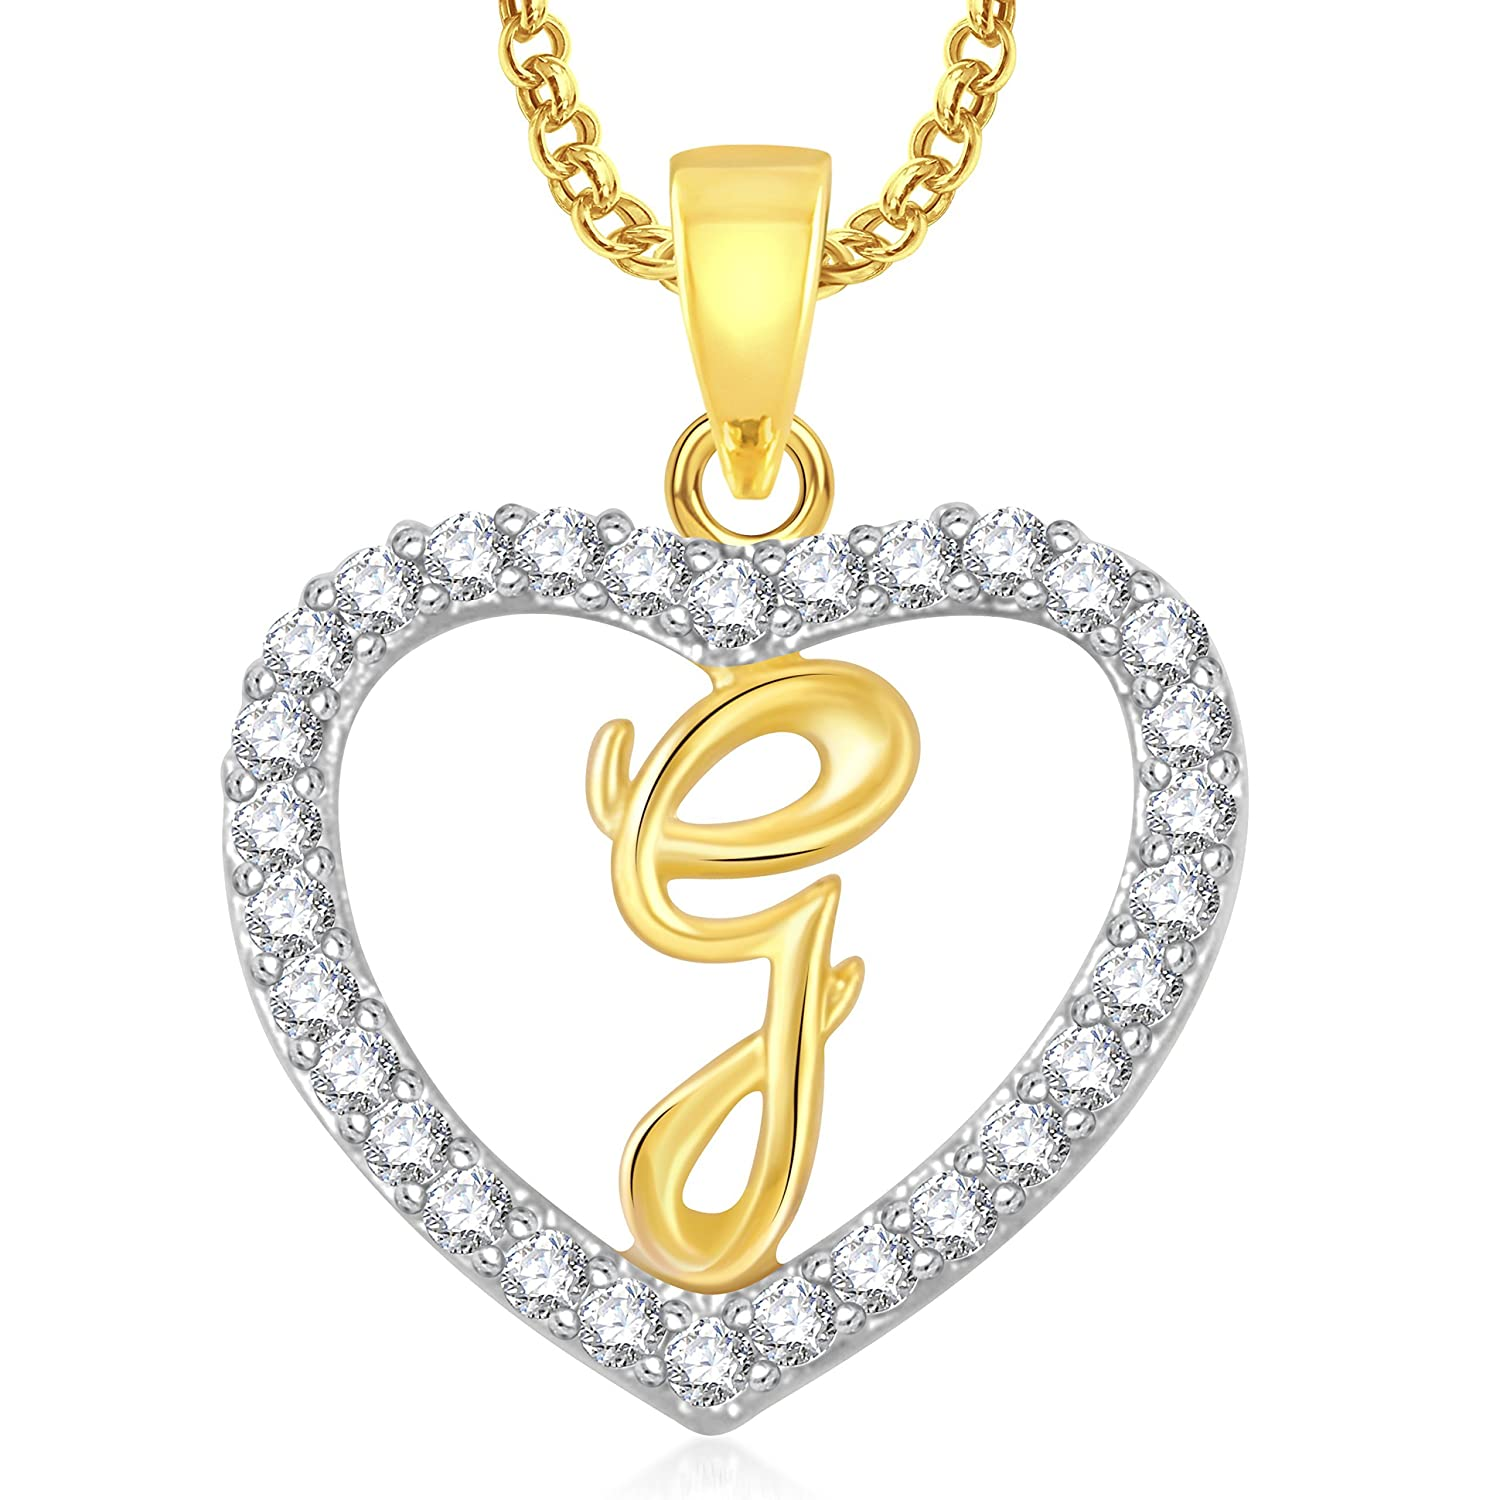 Buy meenaz g letter heart pendant locket alphabet for women and buy meenaz g letter heart pendant locket alphabet for women and men with chain gold plated in american diamond cz online at low prices in india amazon aloadofball Images